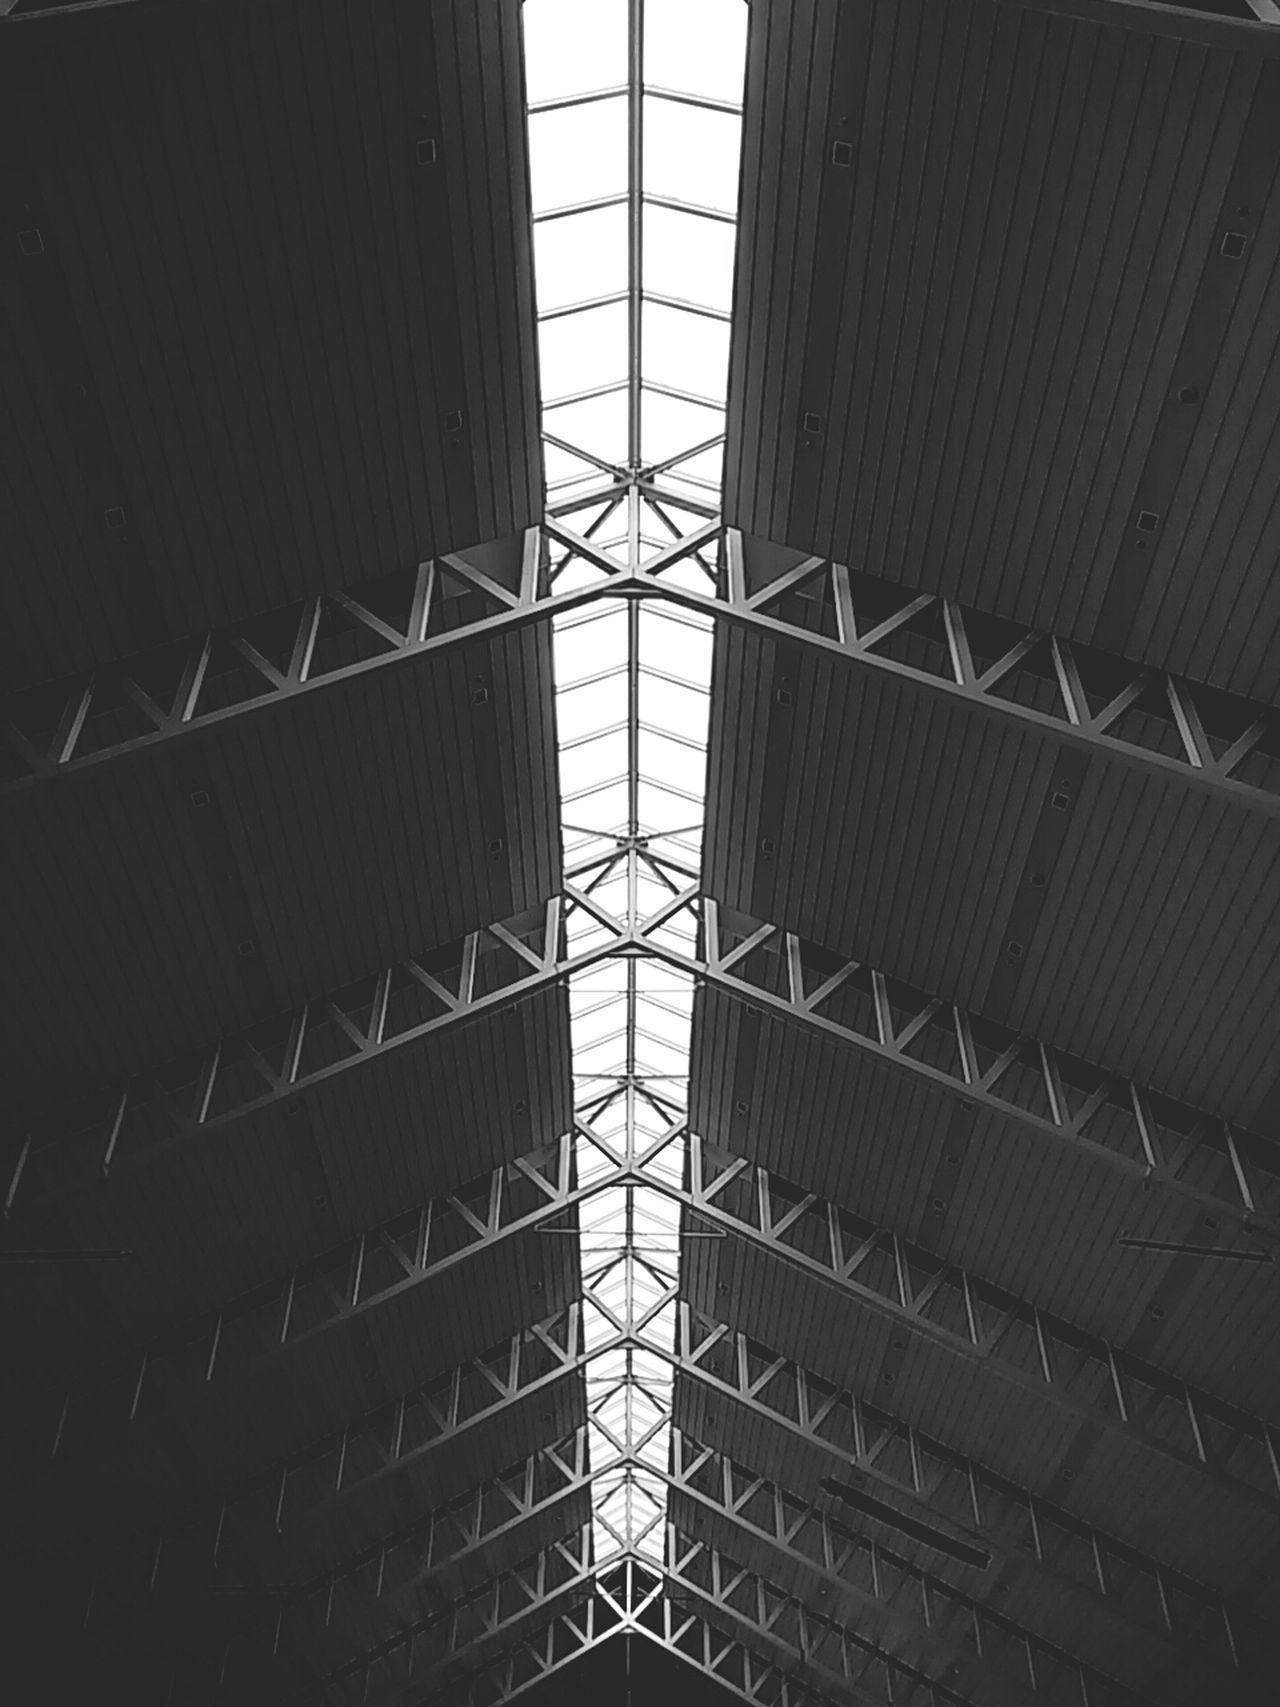 Blackandwhite Bw_ Collection Eyeem Philippines Symmetrical Geometric Shapes Monochrome Perspectives Looking Up Airport In The Terminal EyeEm Davao